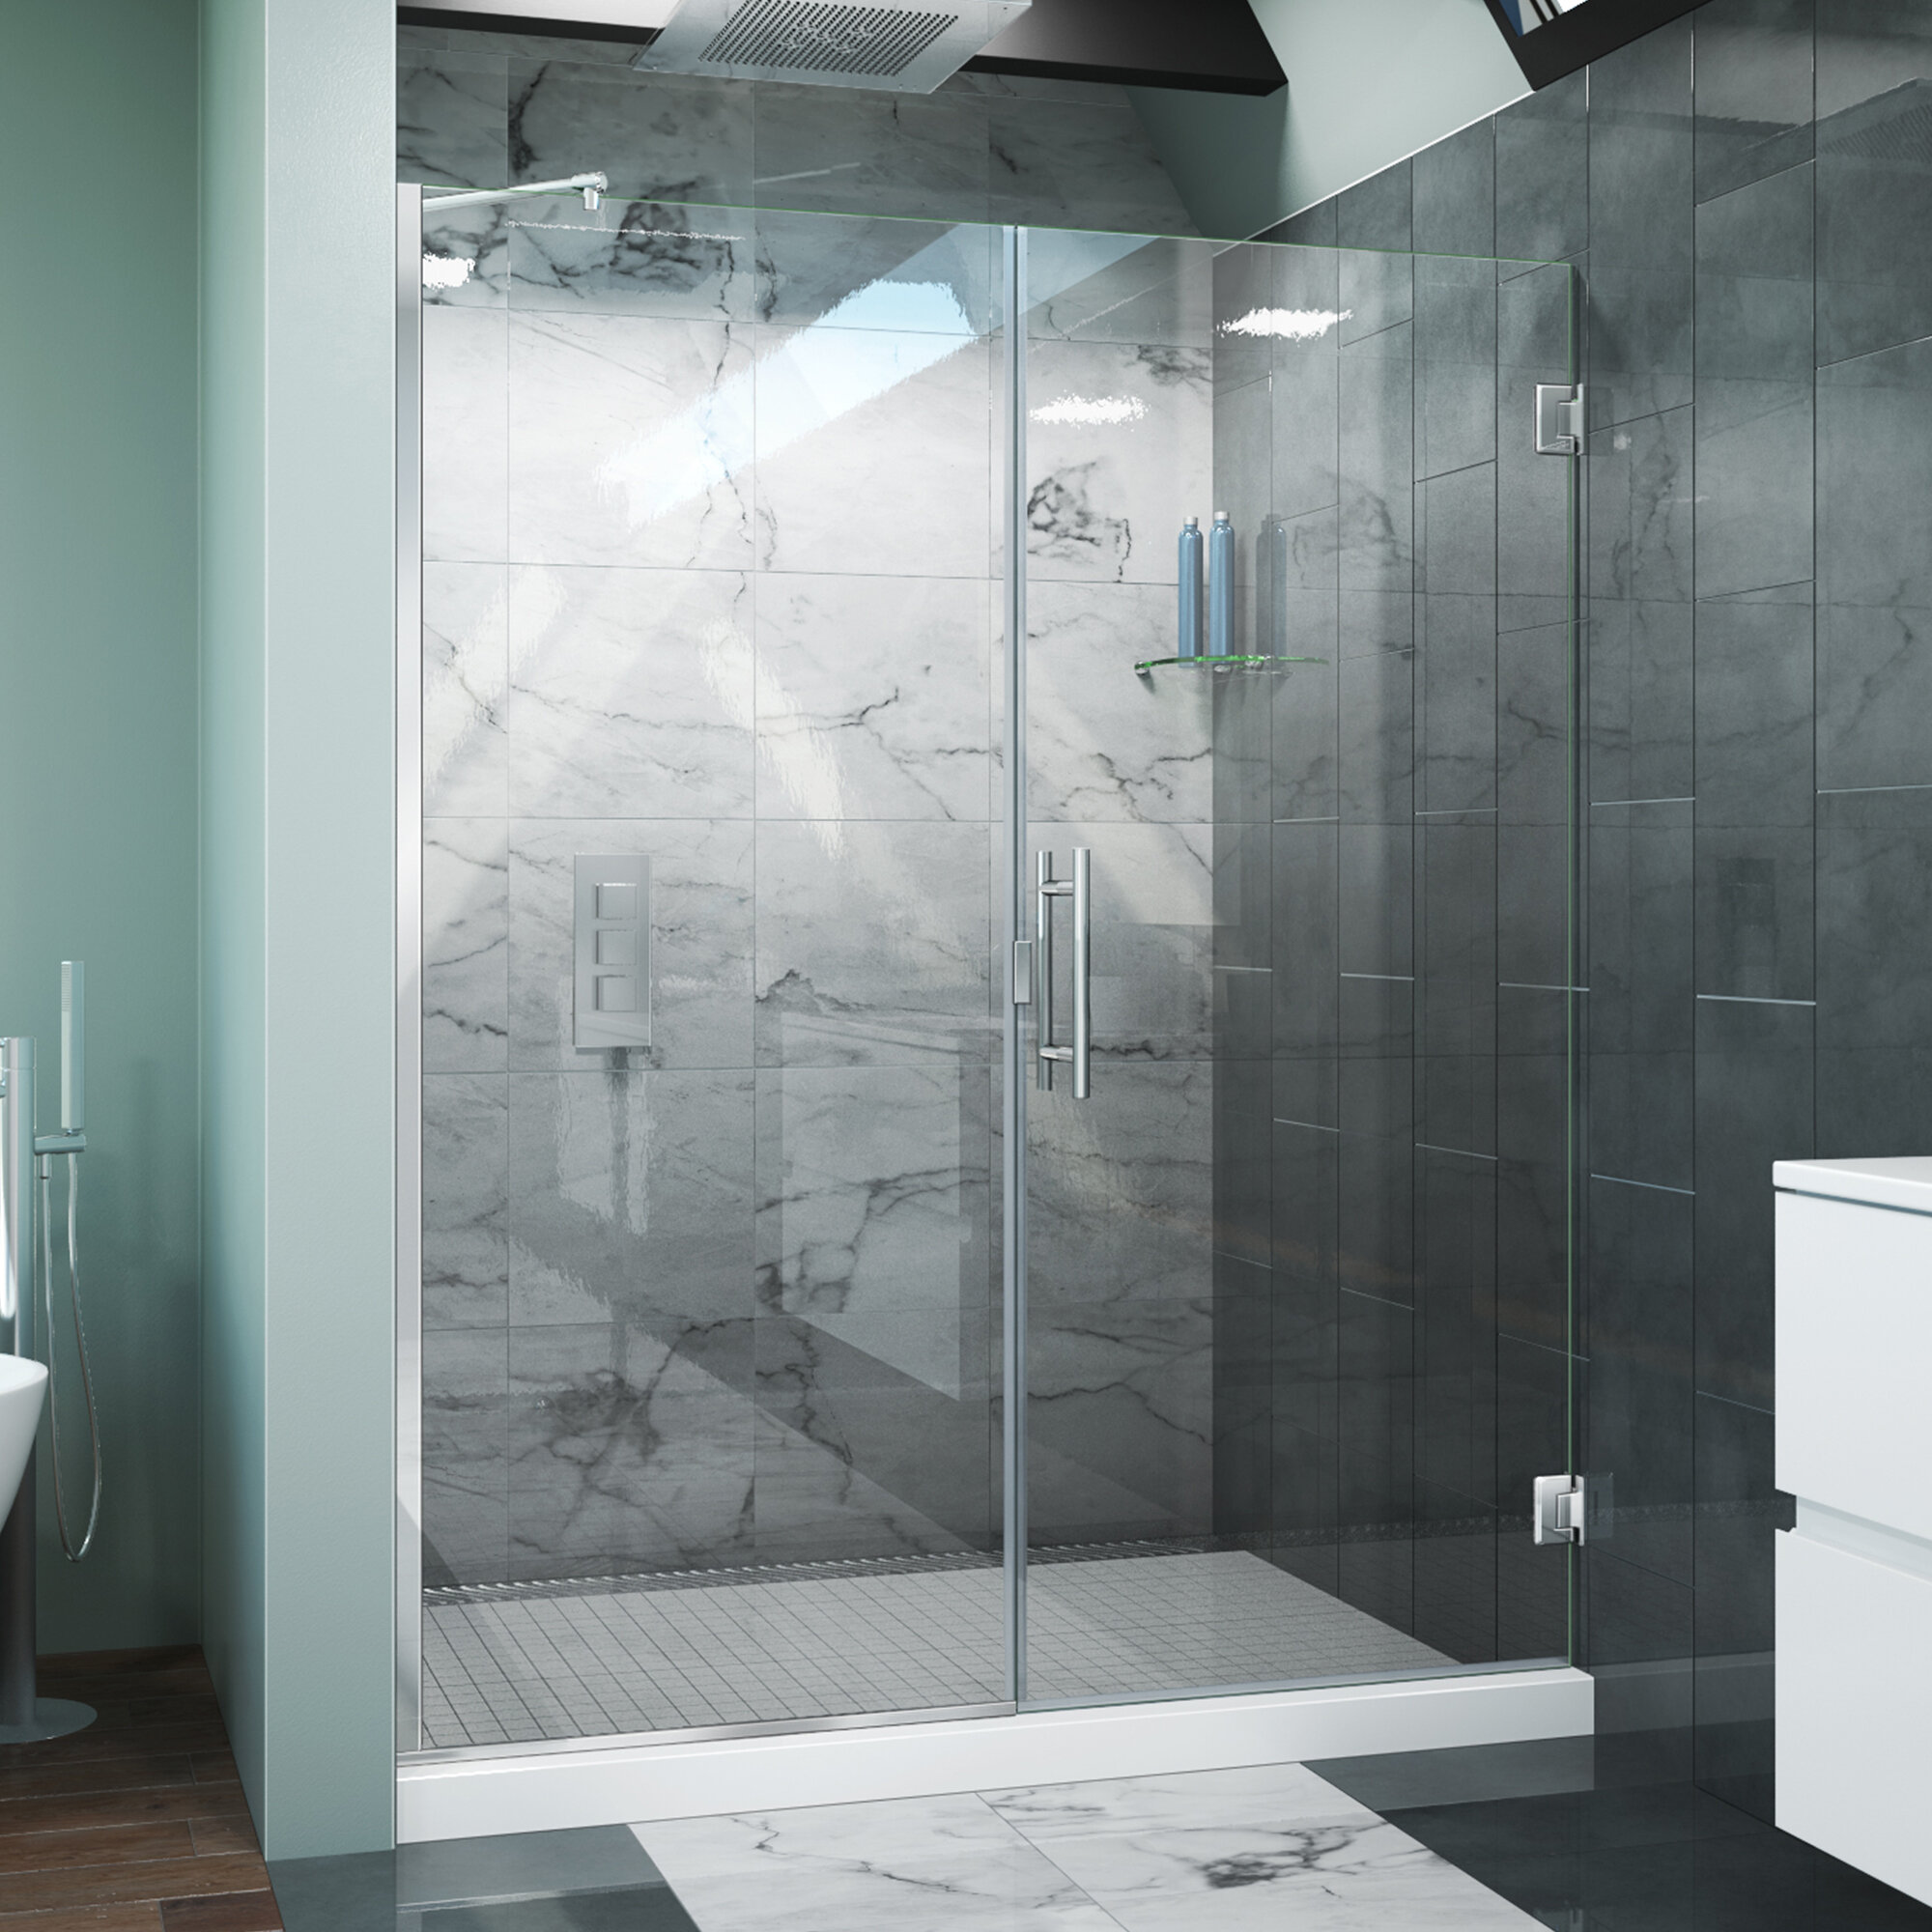 Arizona Shower Door Scottsdale 60 X 72 Hinged Frameless Shower Door With Invisible Shield By Clean X Wayfair